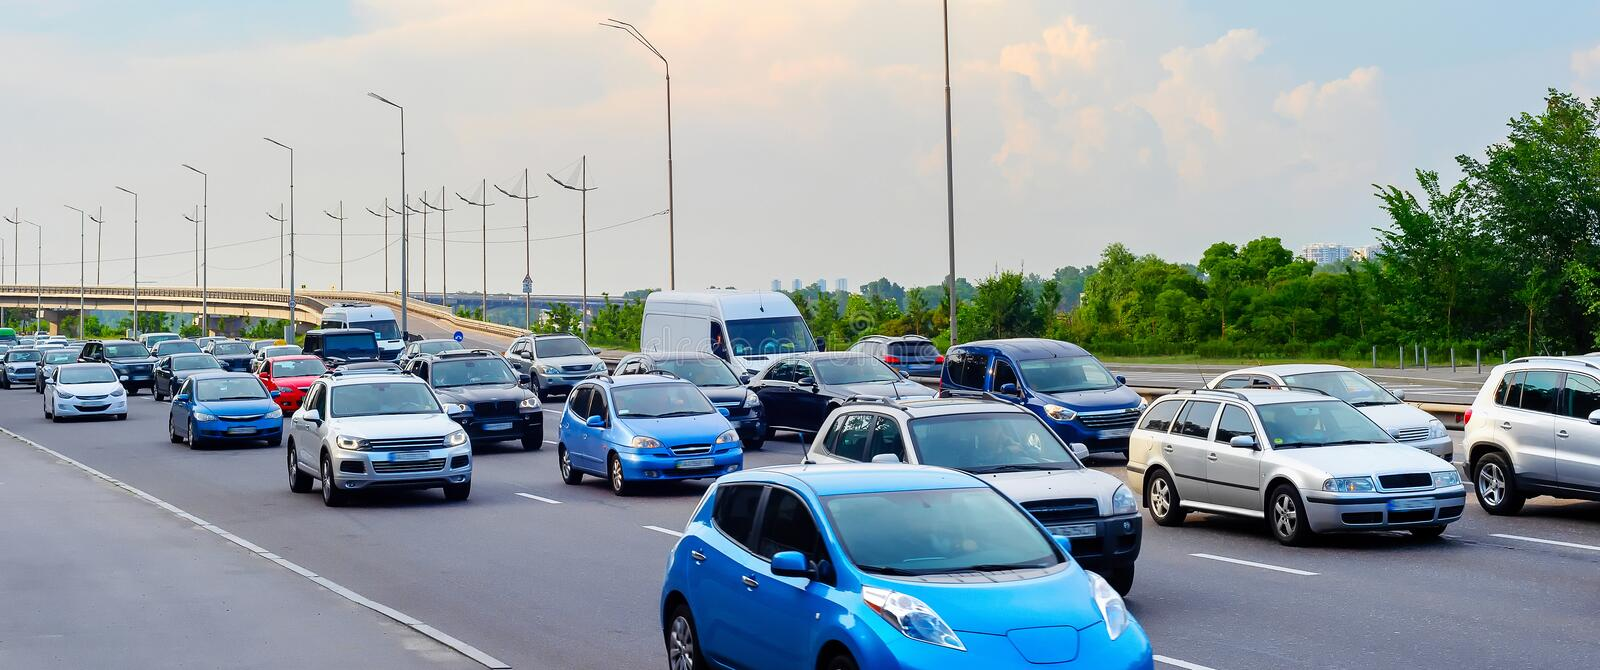 Cars traffic jam panoramic view stock photo